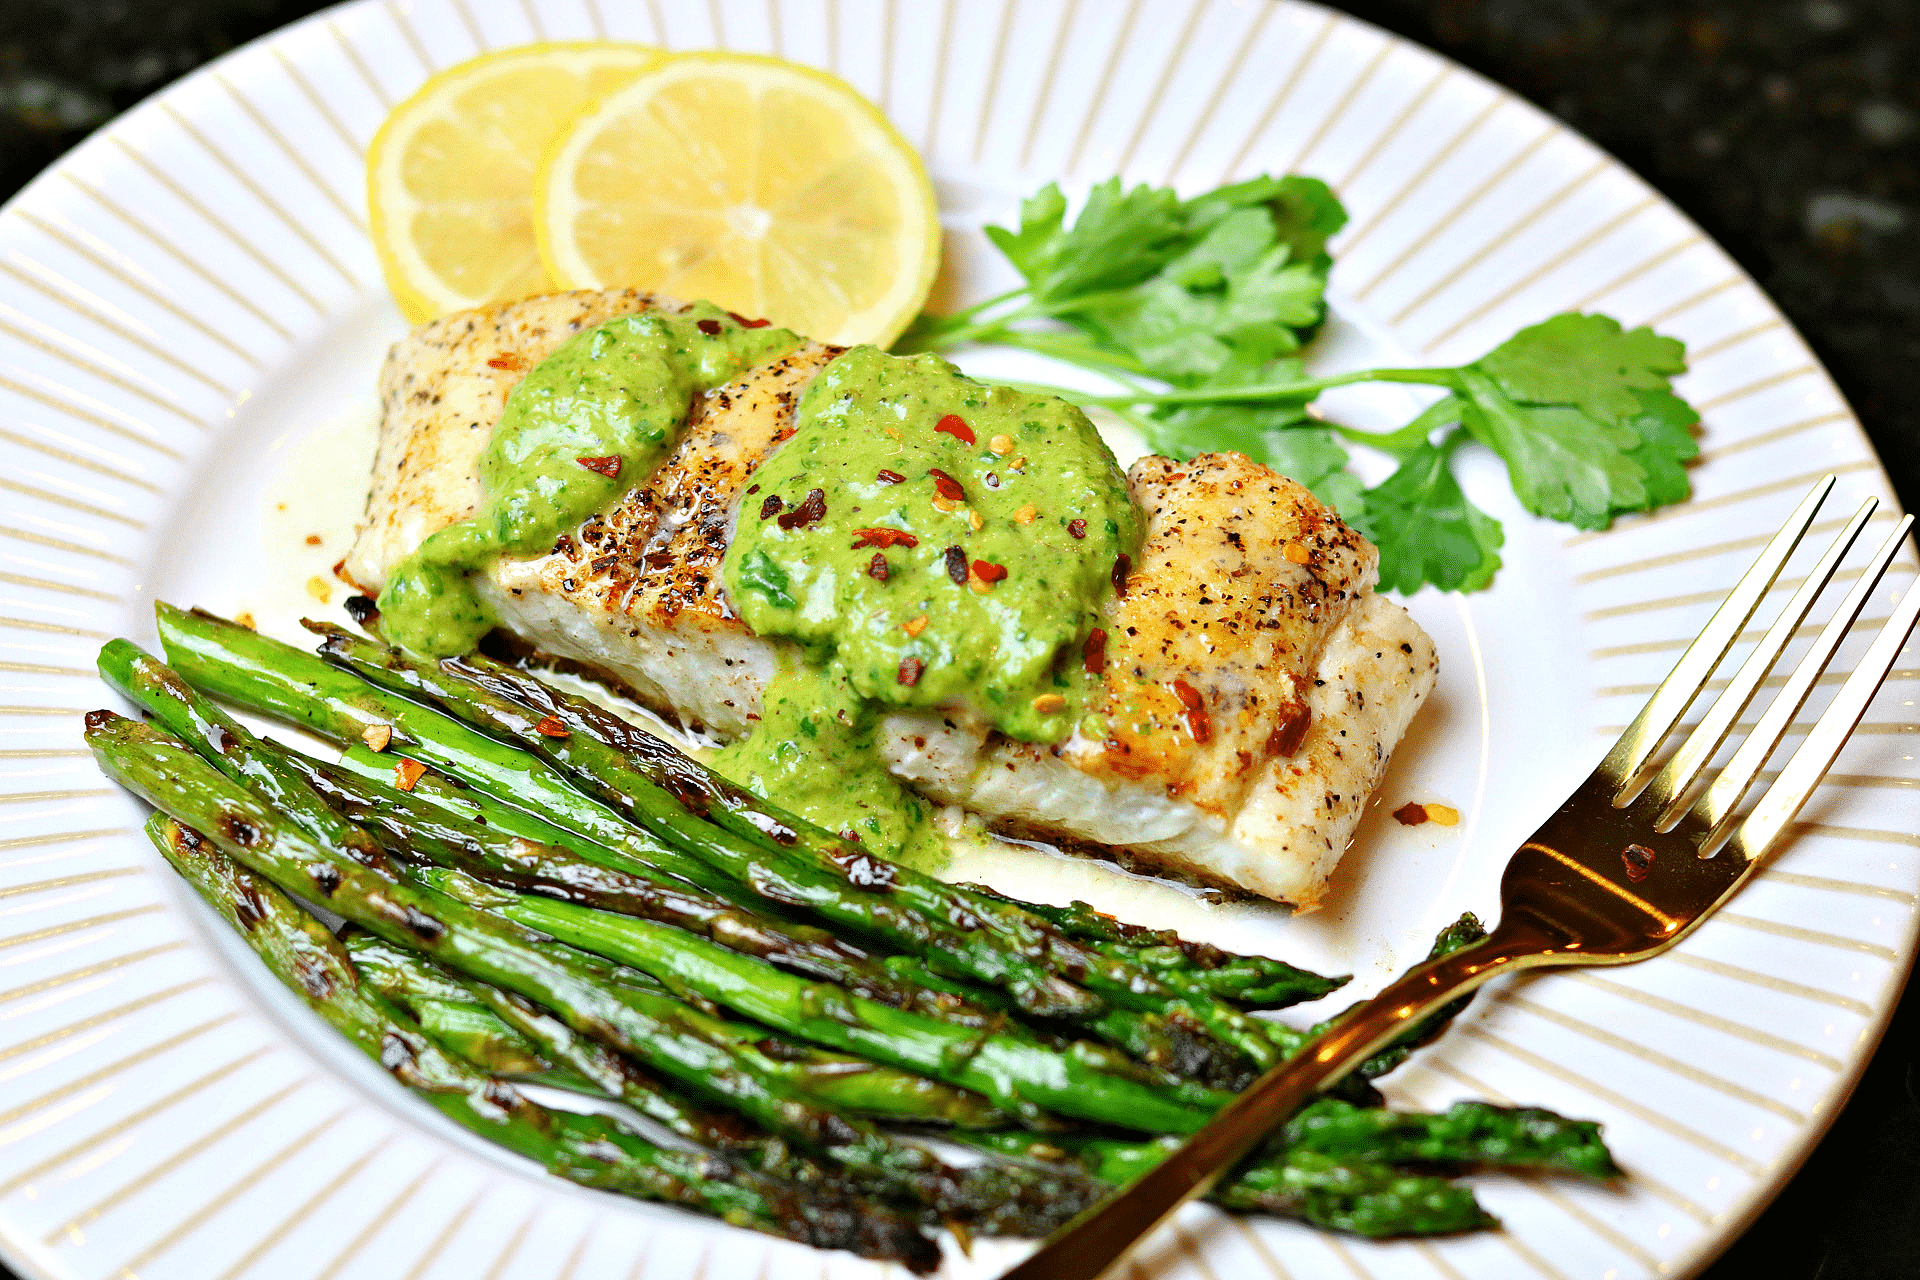 Halibut on a plate with asparagus and chimichurri sauce